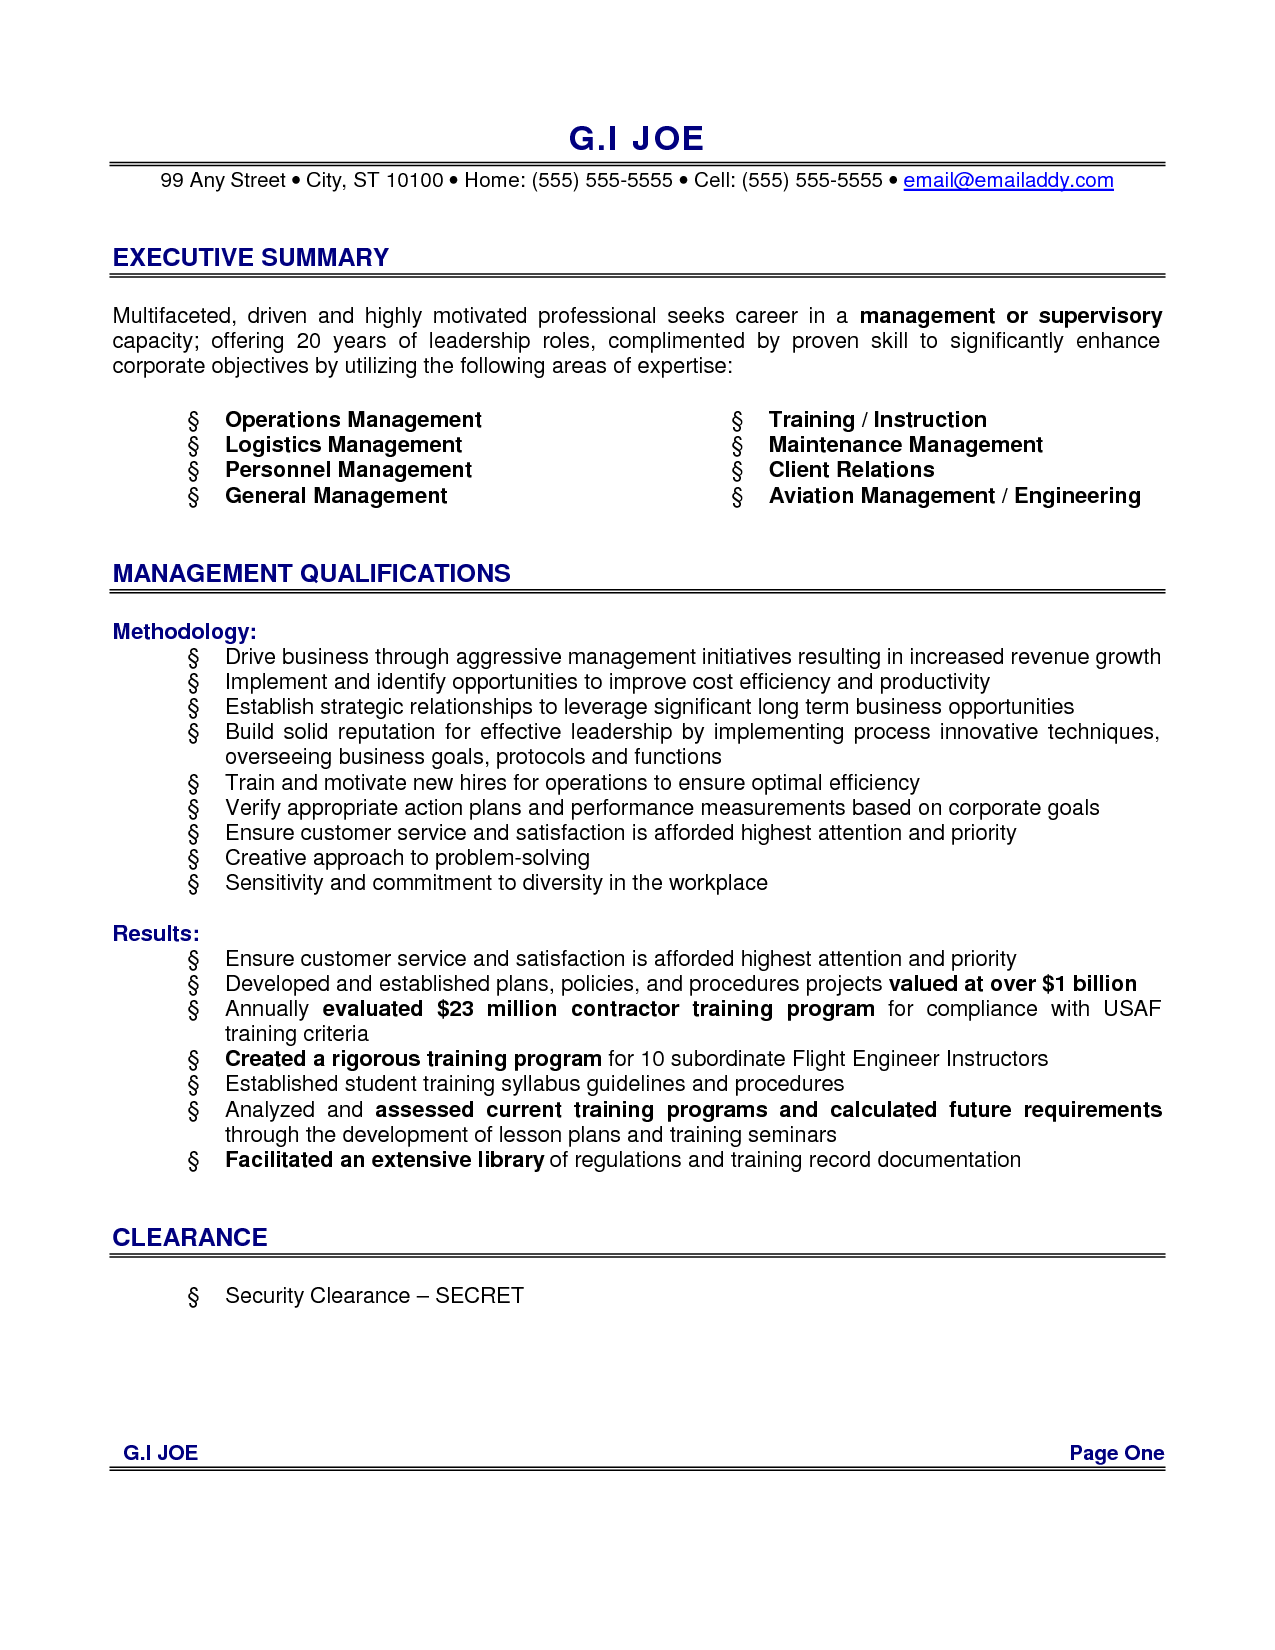 Resume Examples For Executive Summary With Management Qualifications ,  Executive Resume Example As Writing Guidelines  Qualifications Summary For Resume